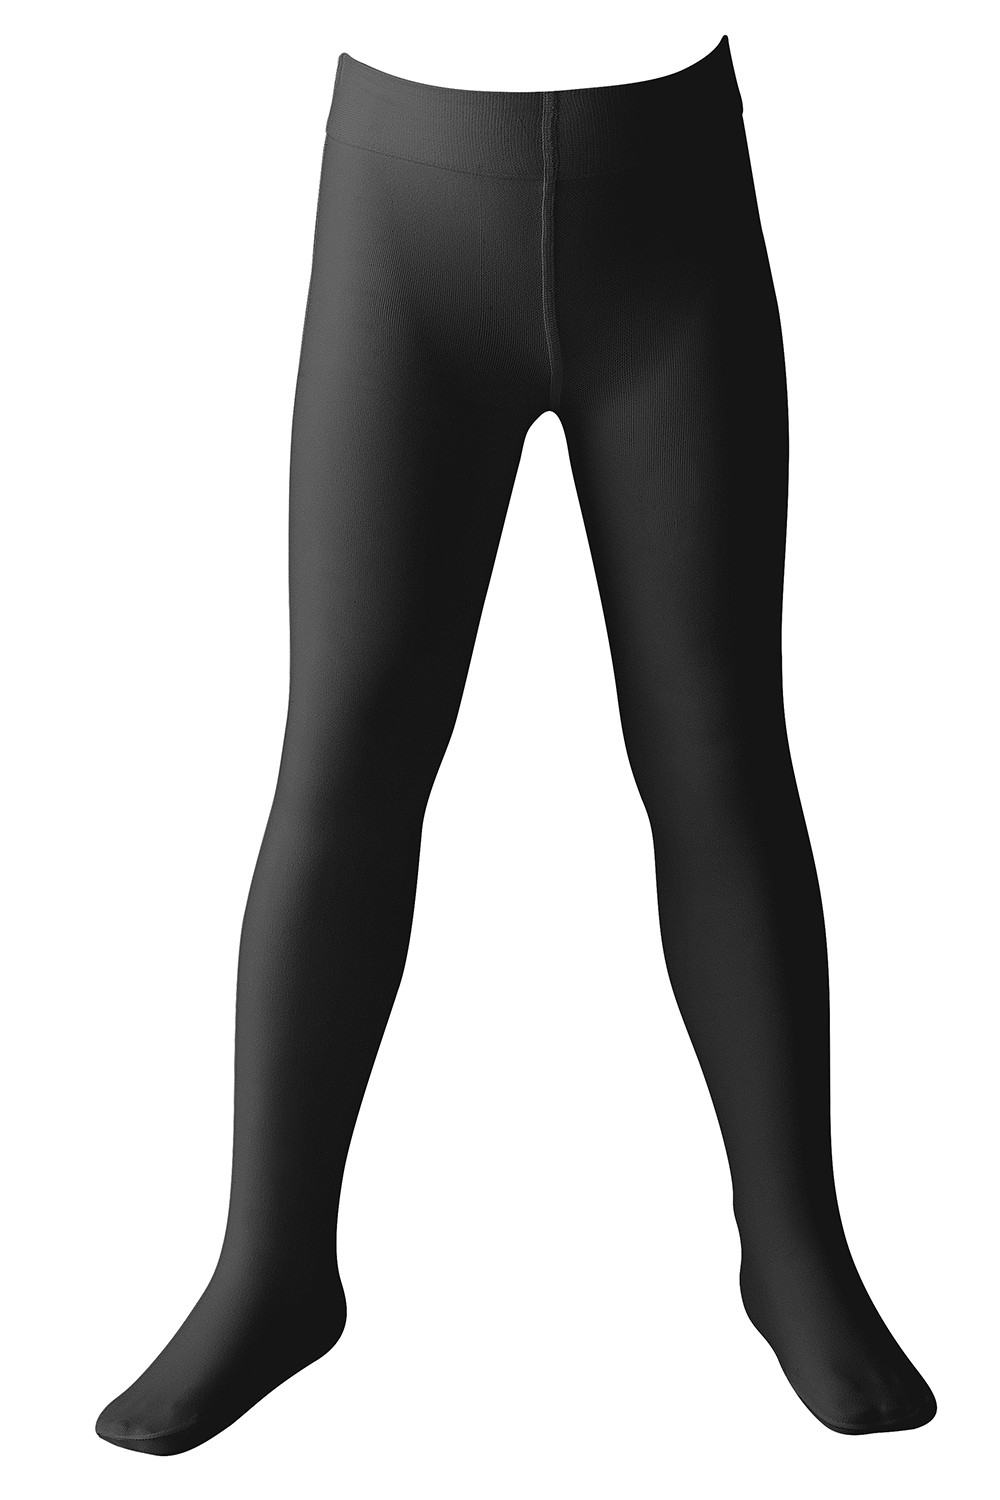 Girls Dance Tights  Children's Dance Tights